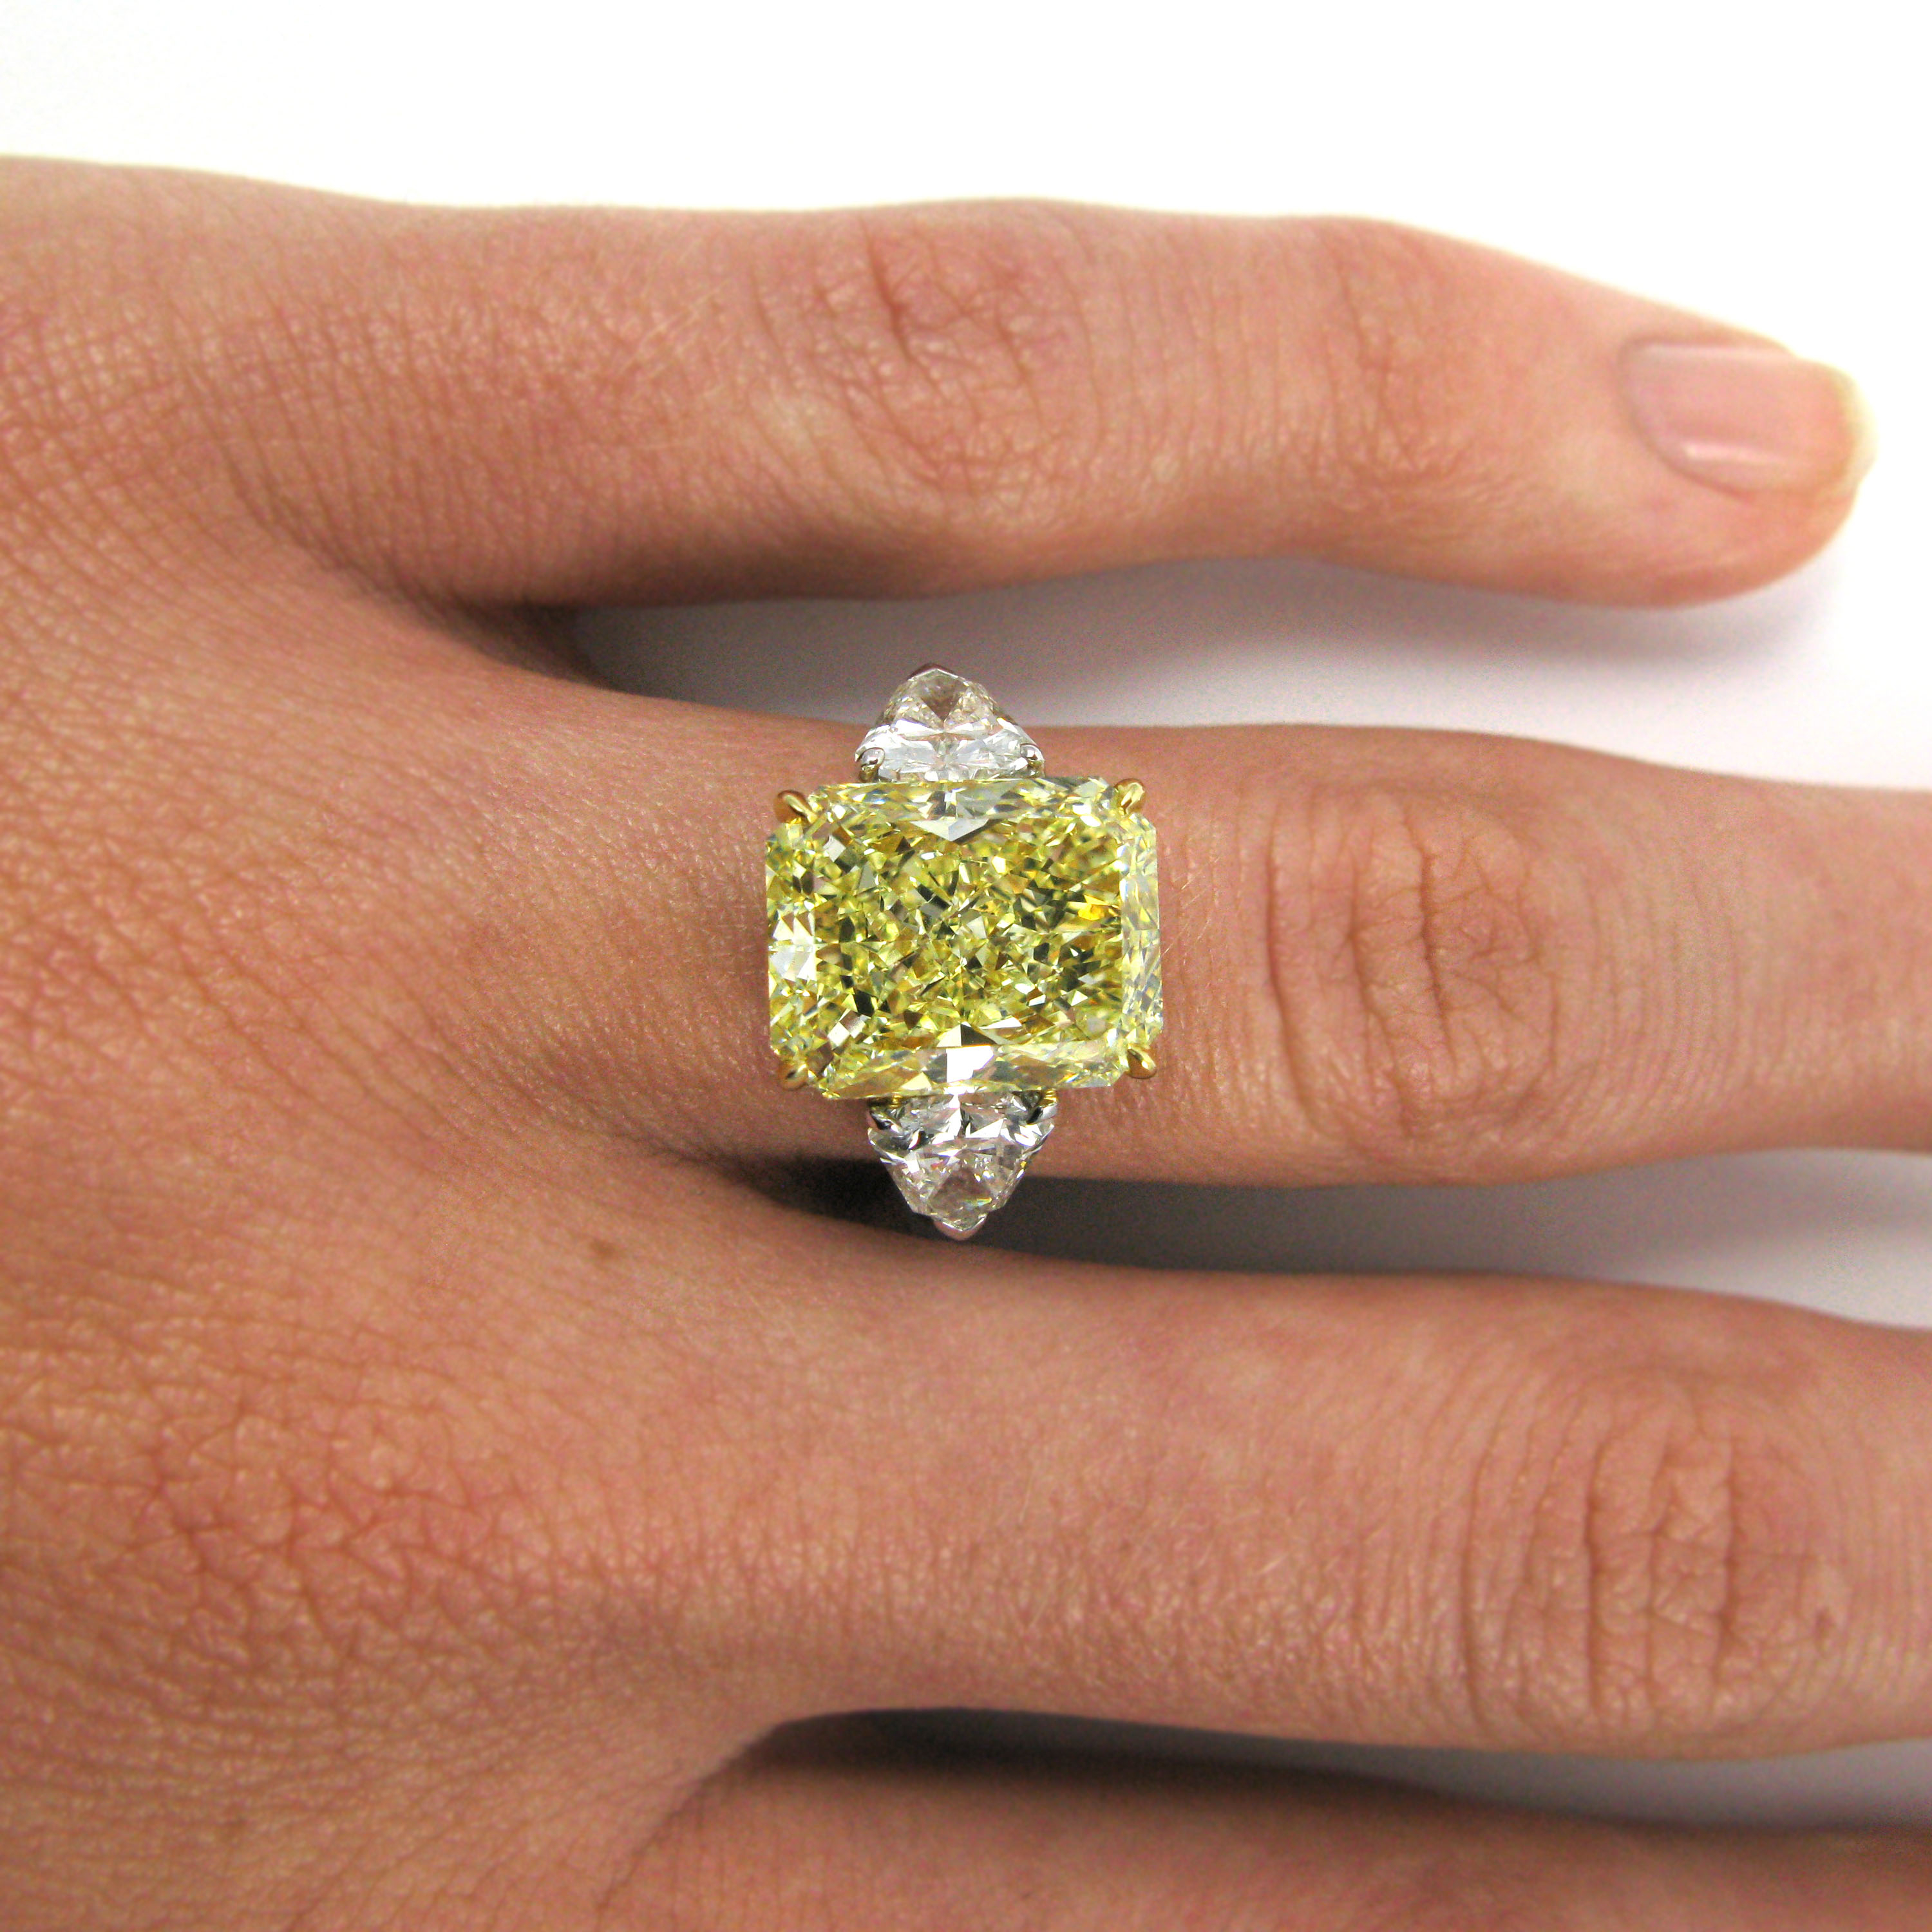 7.17 Carat Fancy Yellow Radiant Cut Diamond Ring Gia With Radiant Yellow Diamond Rings (Gallery 2 of 25)